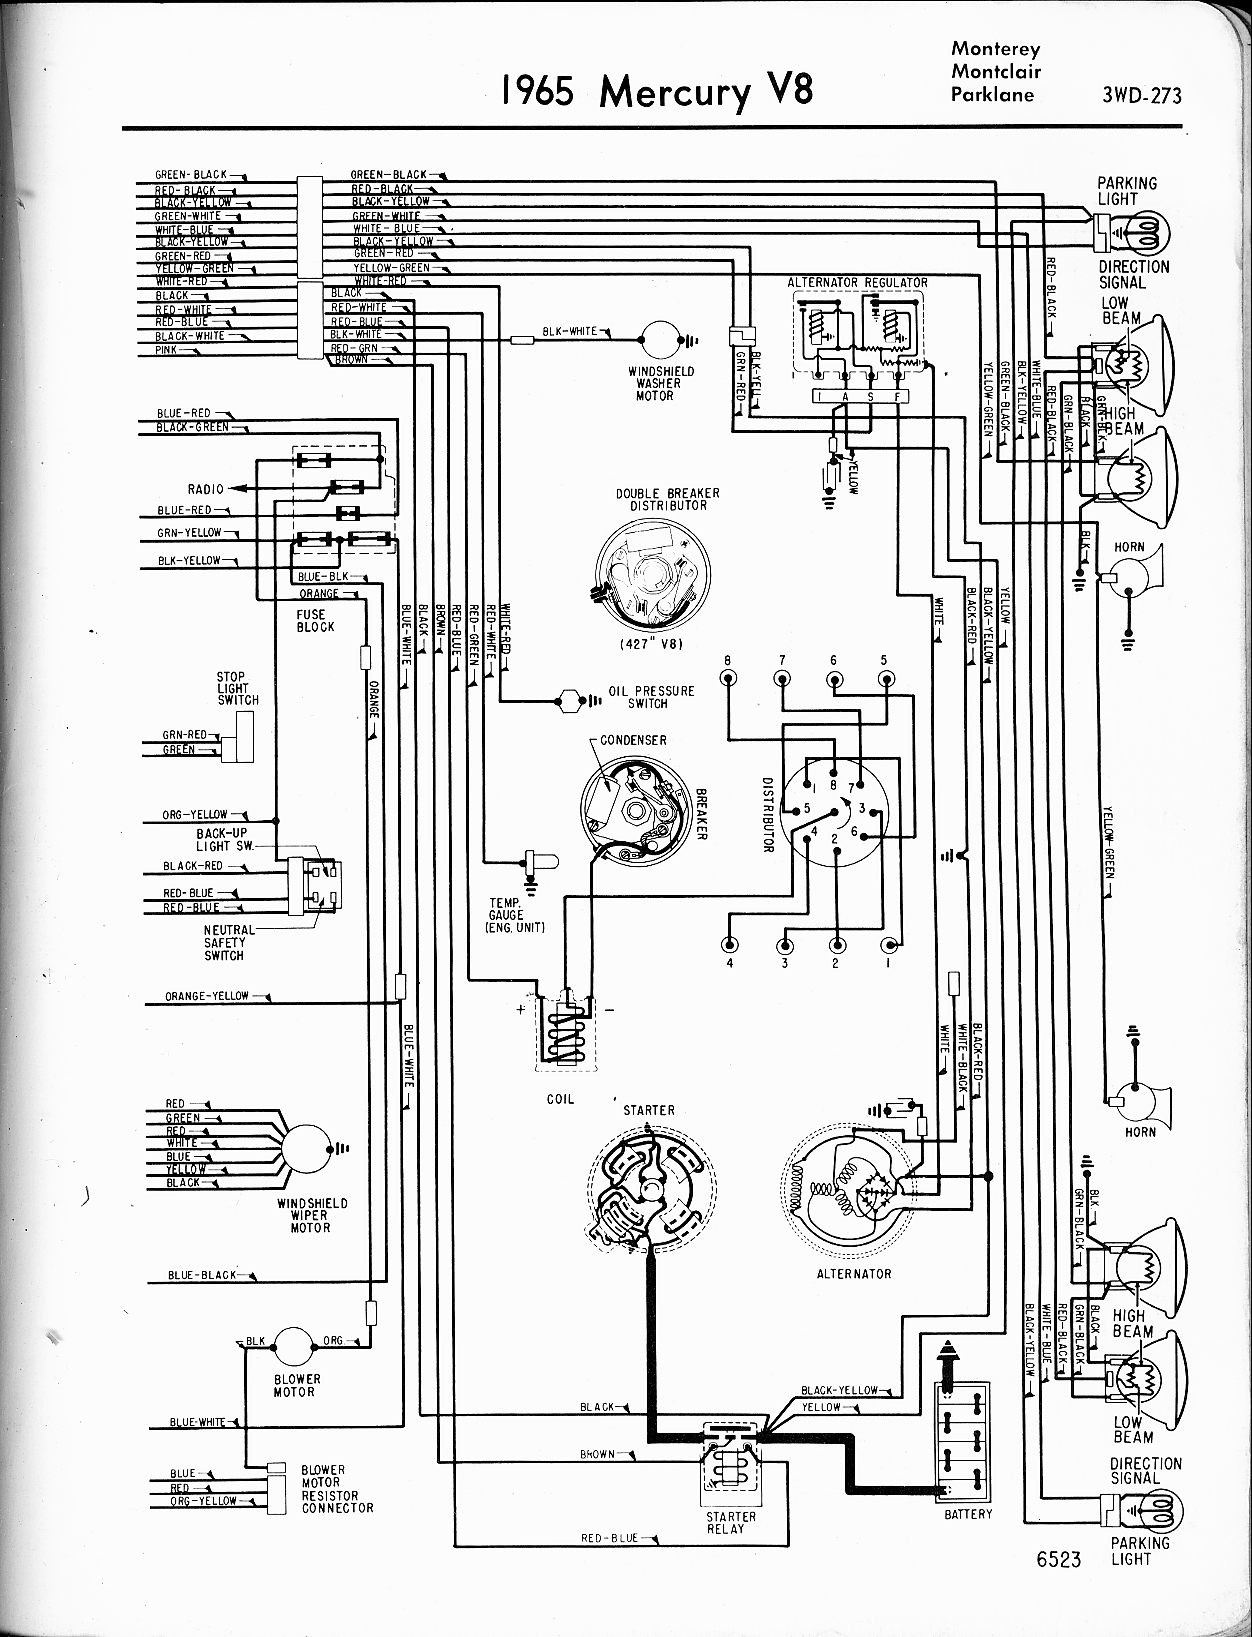 1970 Camaro Wiring Diagram V8 Worksheet And 1973 Cougar 2001 Mercury Engine My Rh Detoxicrecenze Com Gm Starter 1968